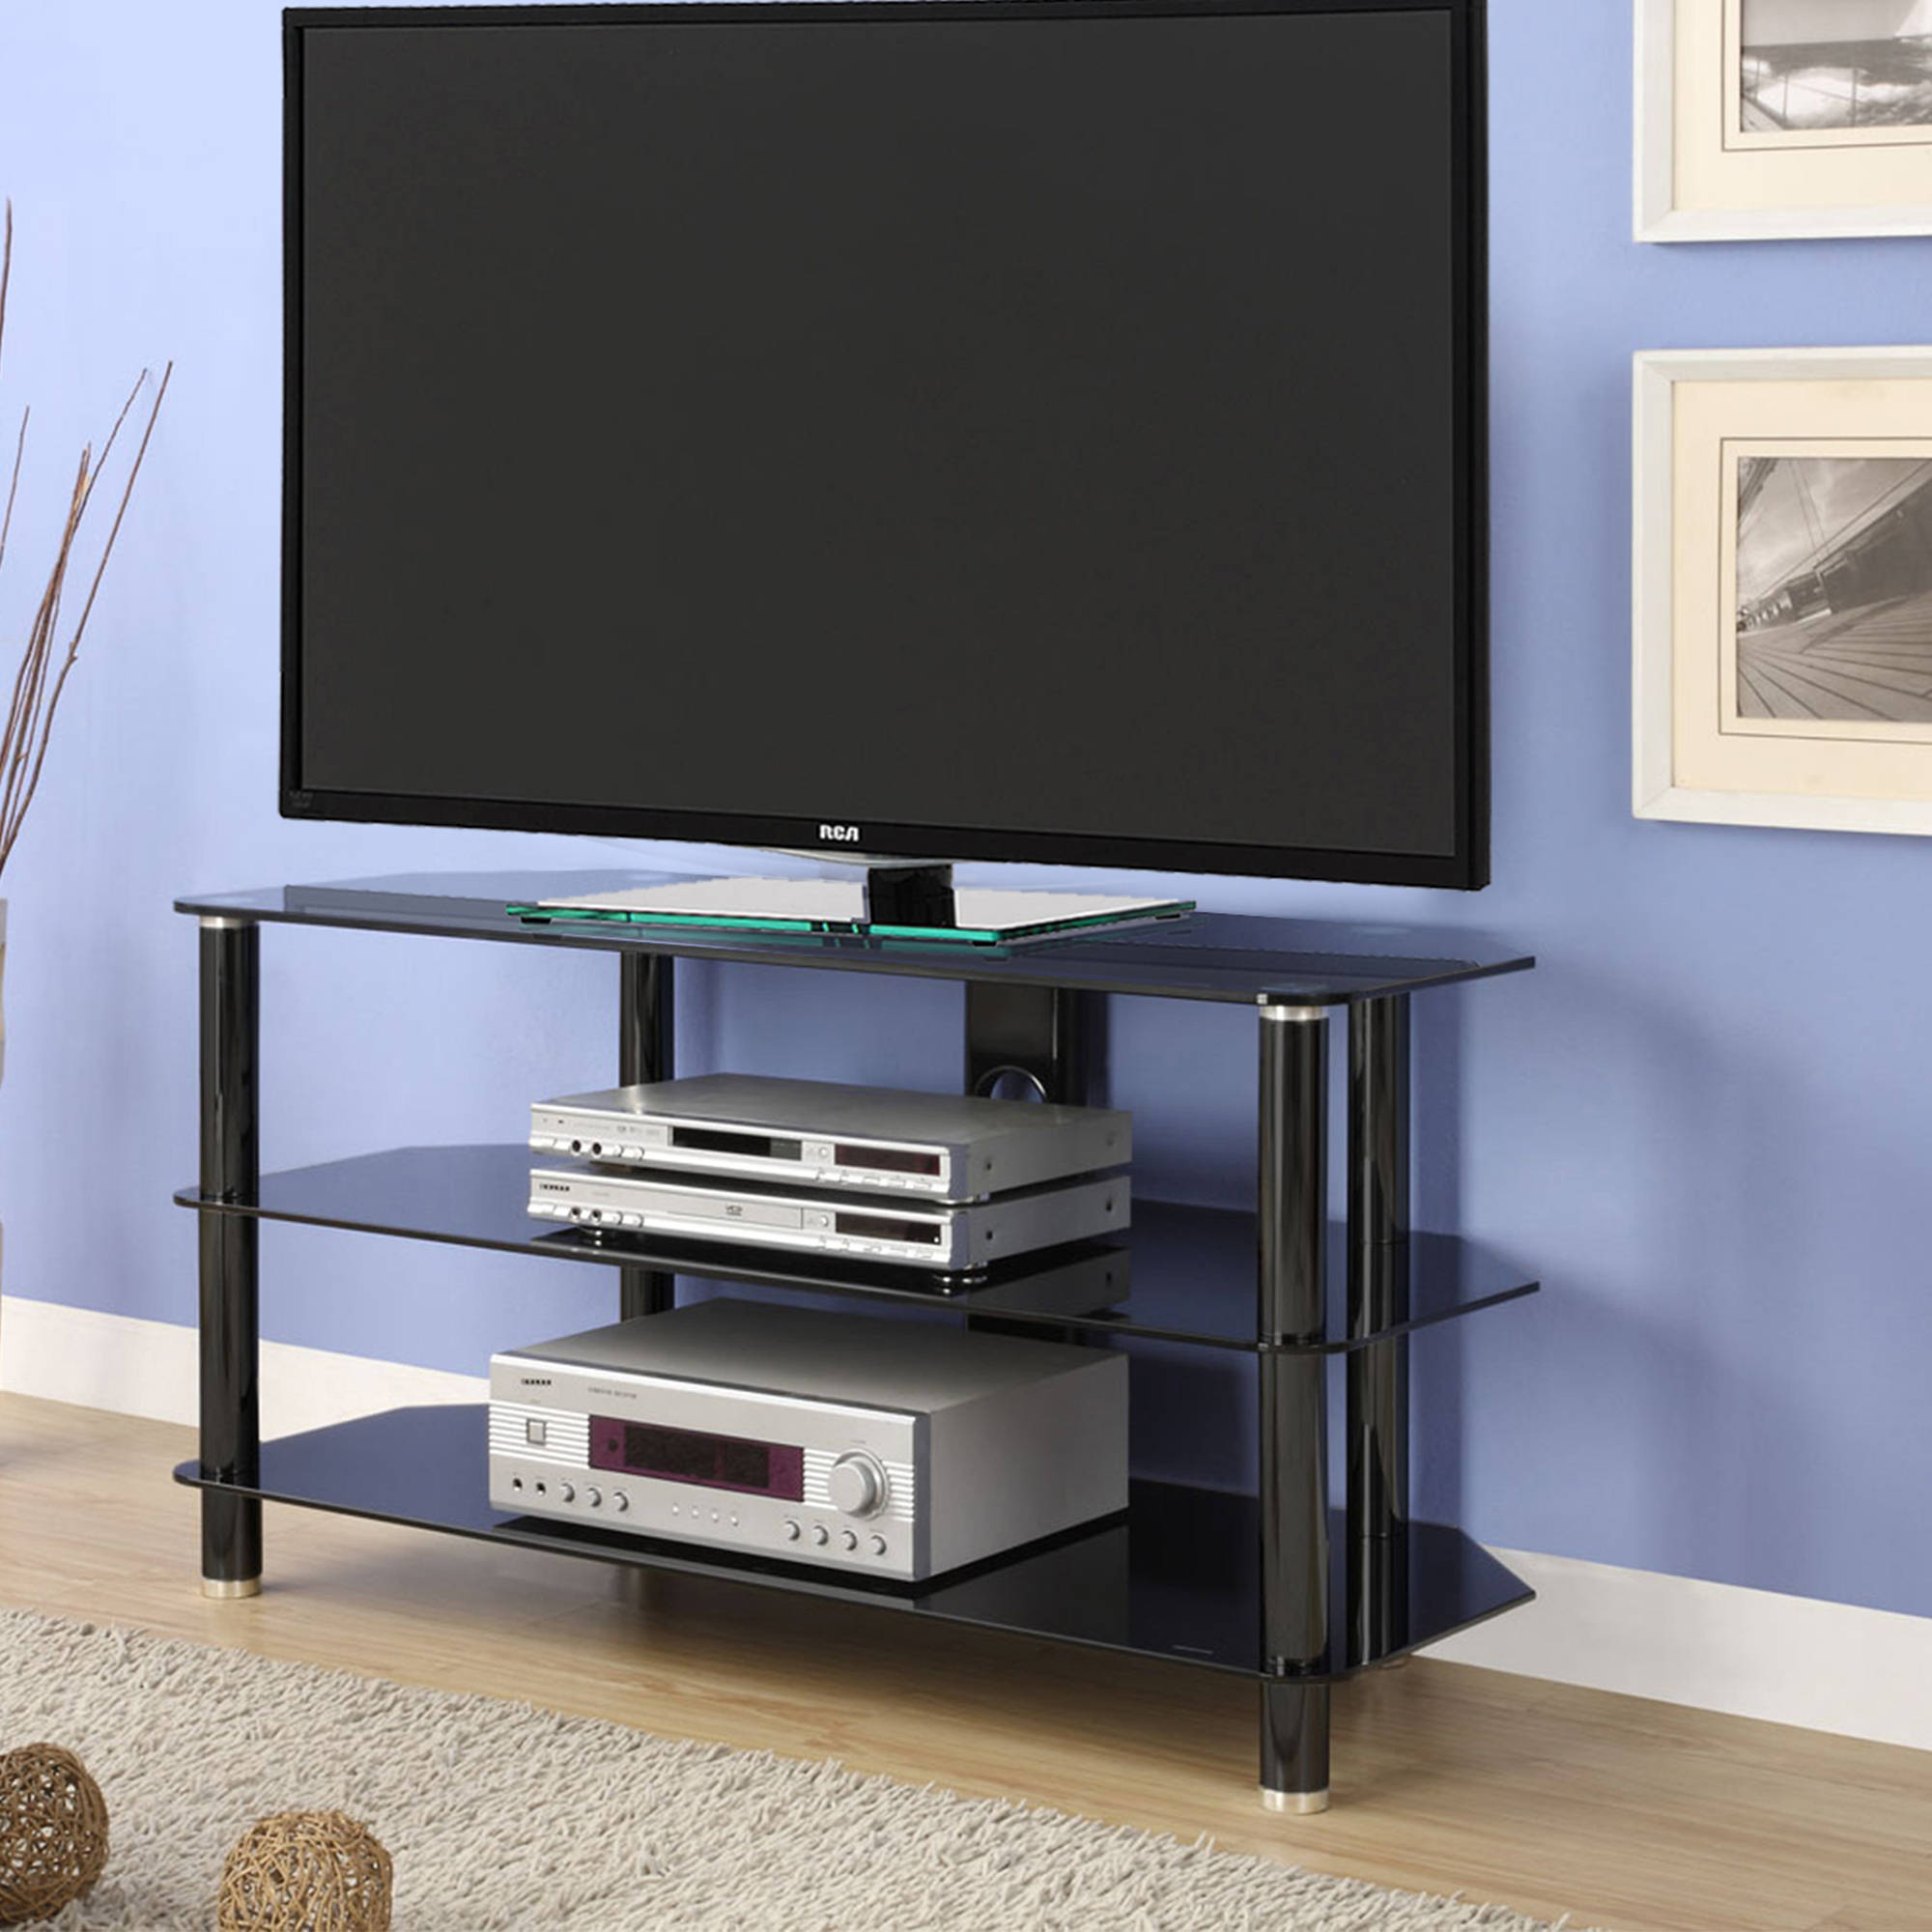 """Innovex Tempered Black Glass Concord 42 TV Stand for TVs up to 52"""", Black"""